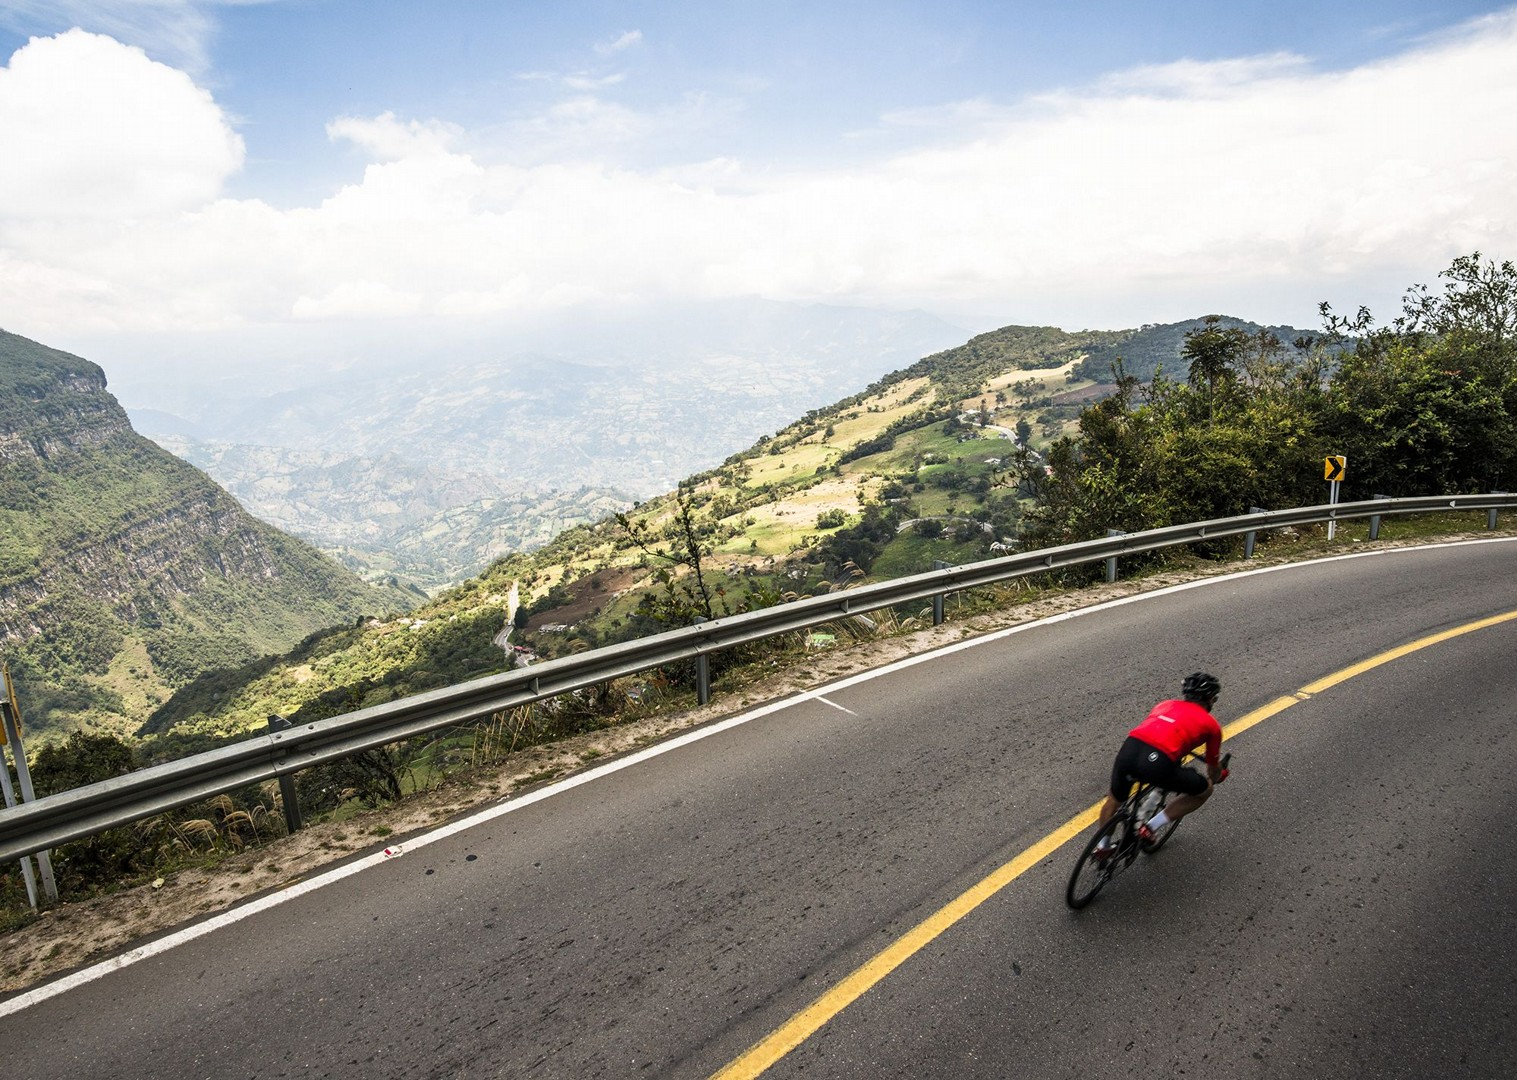 day_1_009.jpg - Colombia - Emerald Mountains - Road Cycling